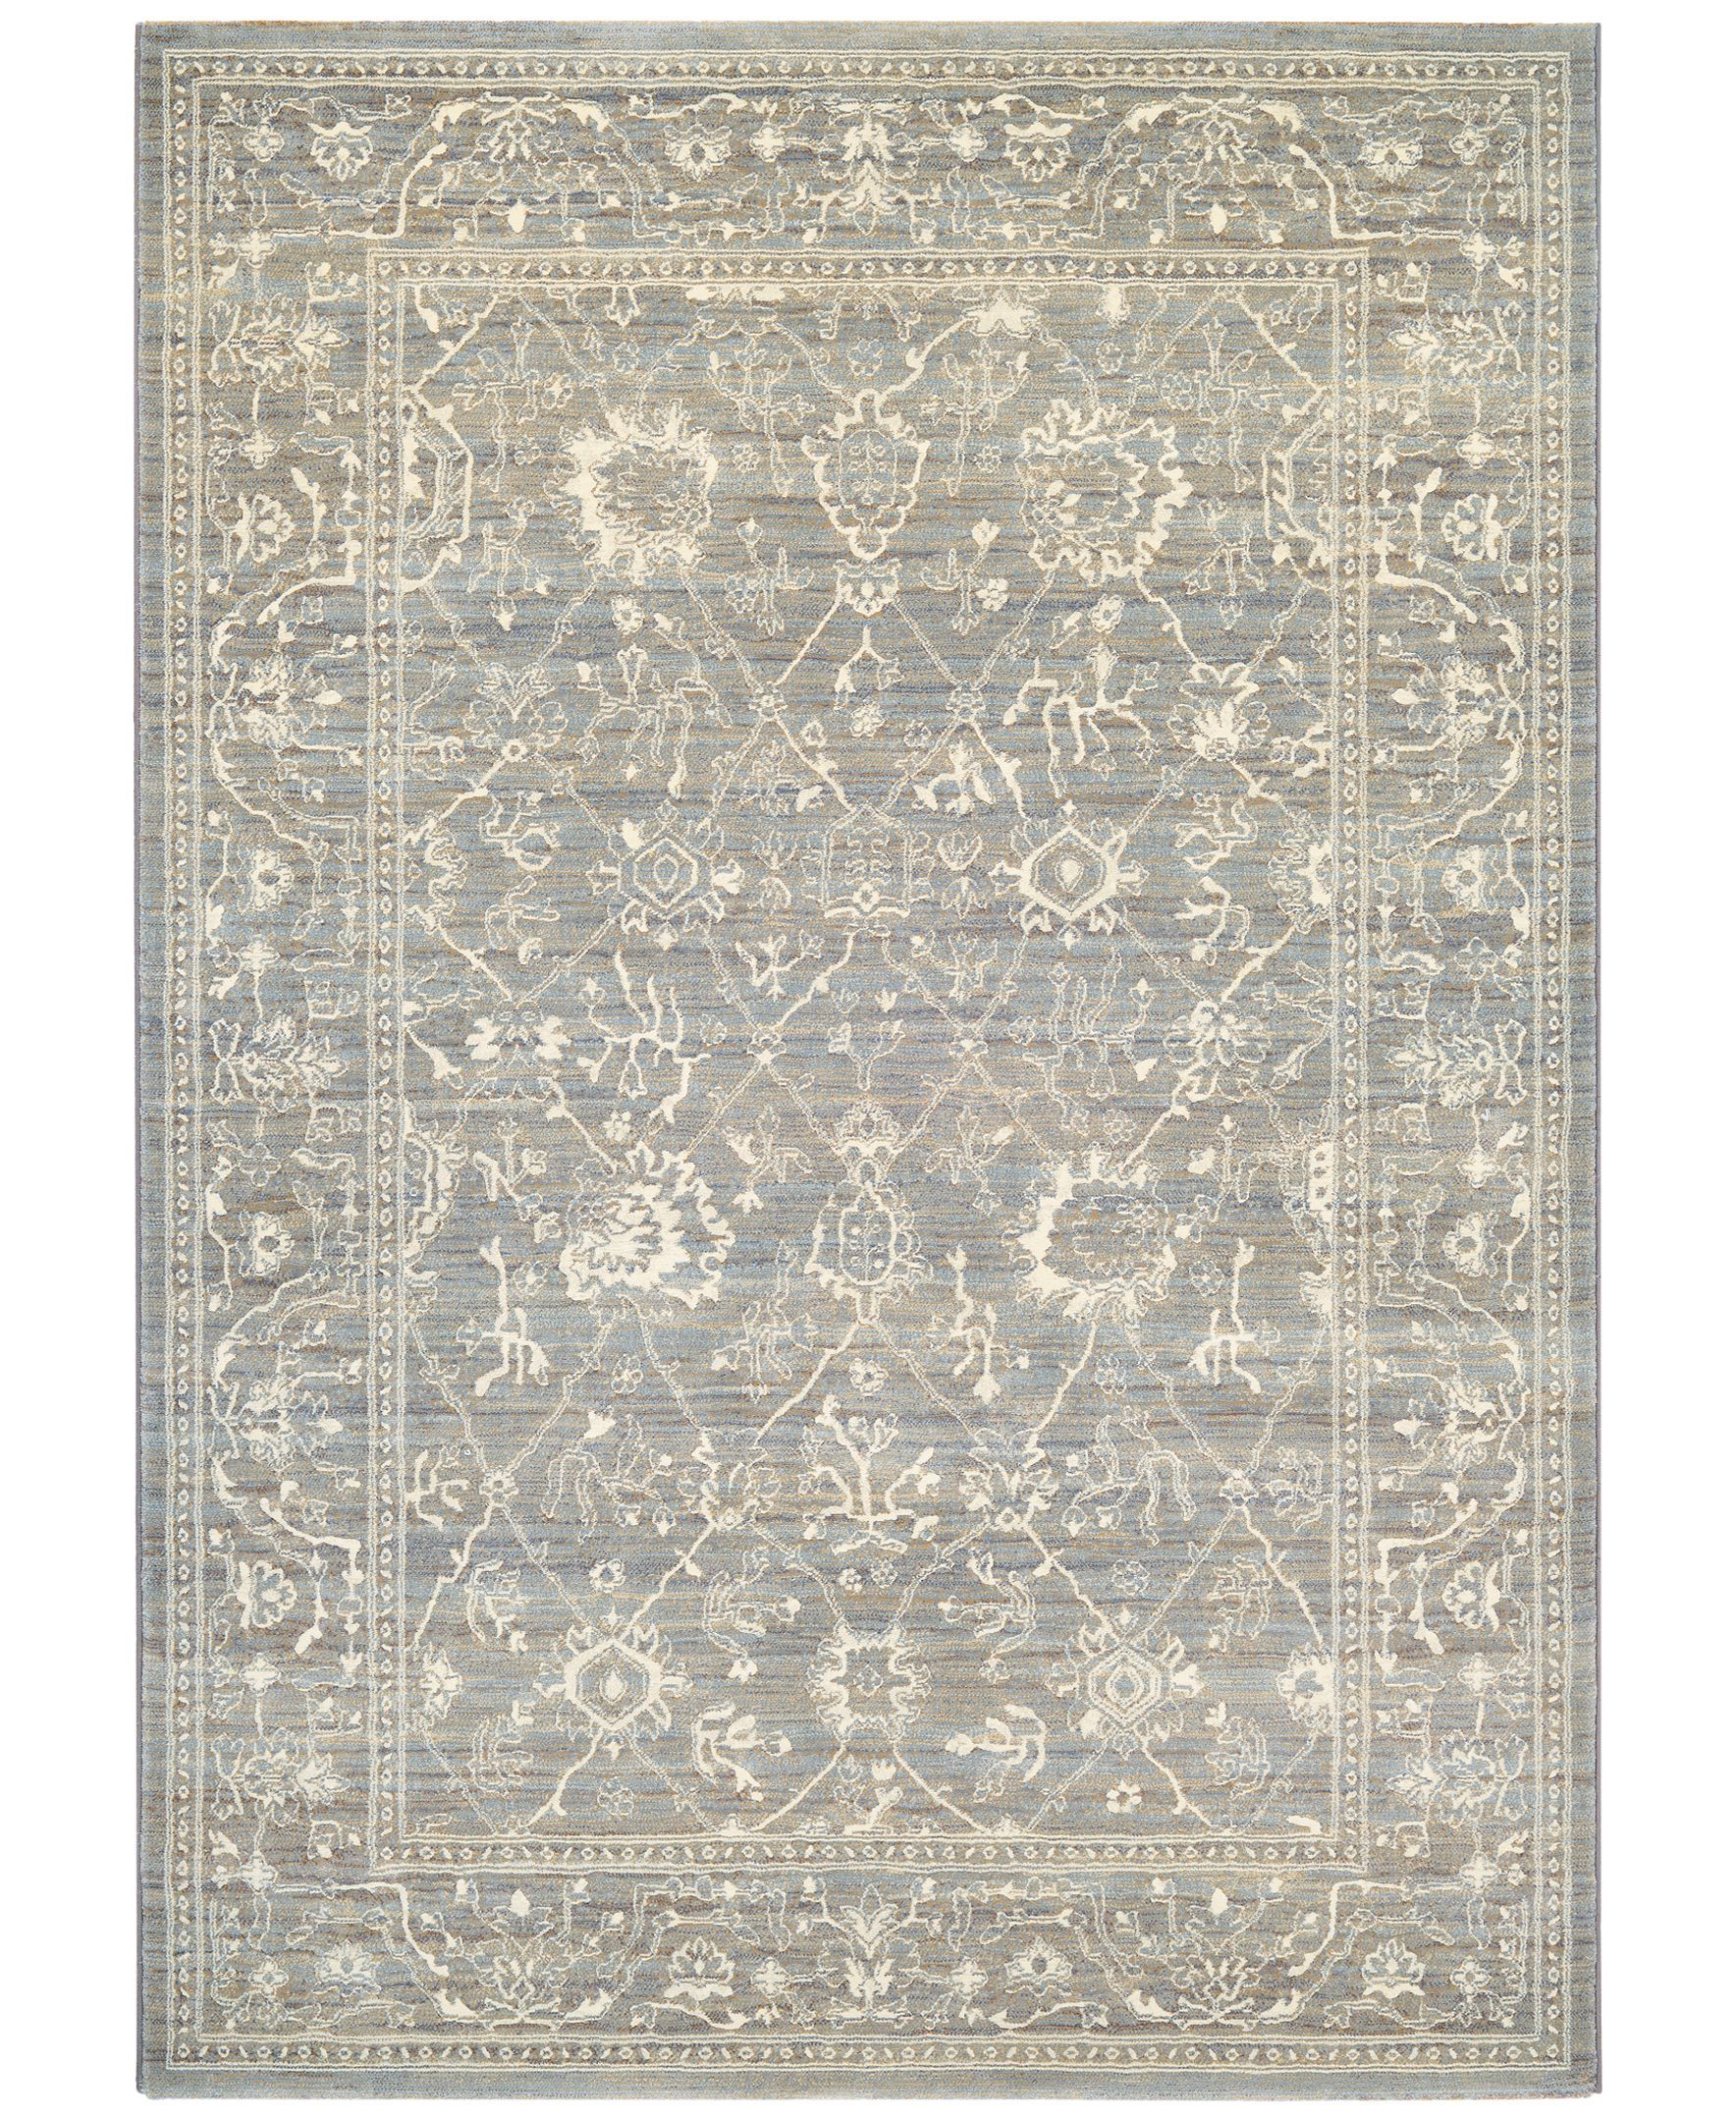 Couristan Mckinley Persian Arabesque Charcoal Ivory 3 11 Couristan Area Rugs Rugs